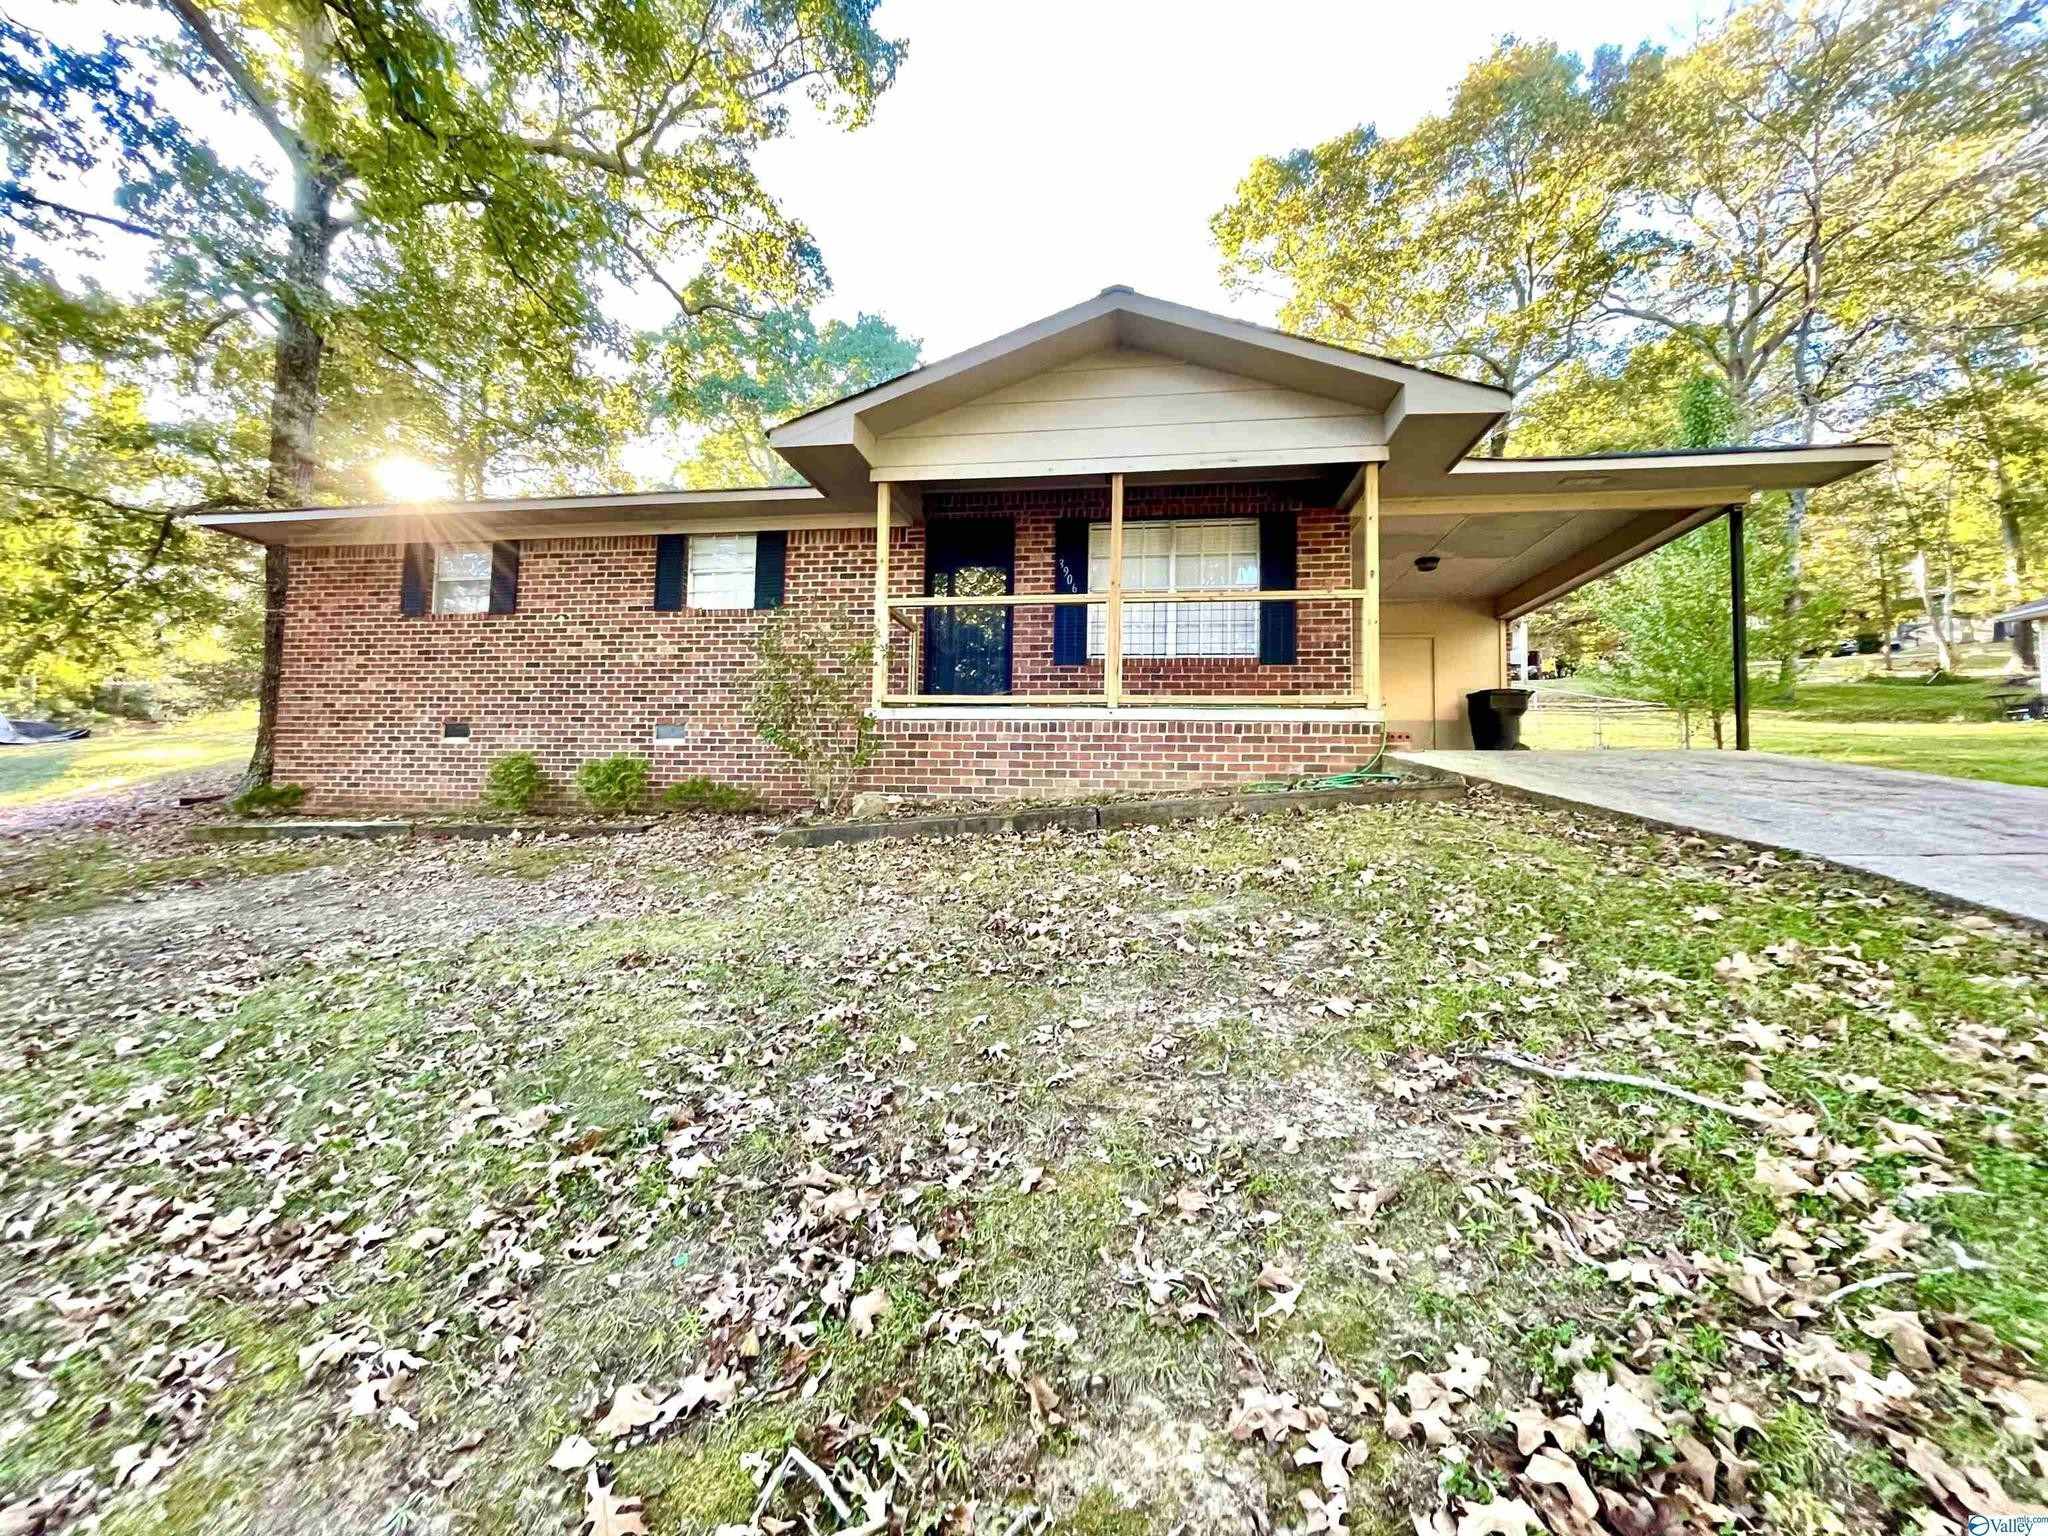 3-Bedroom House In Pine Hill